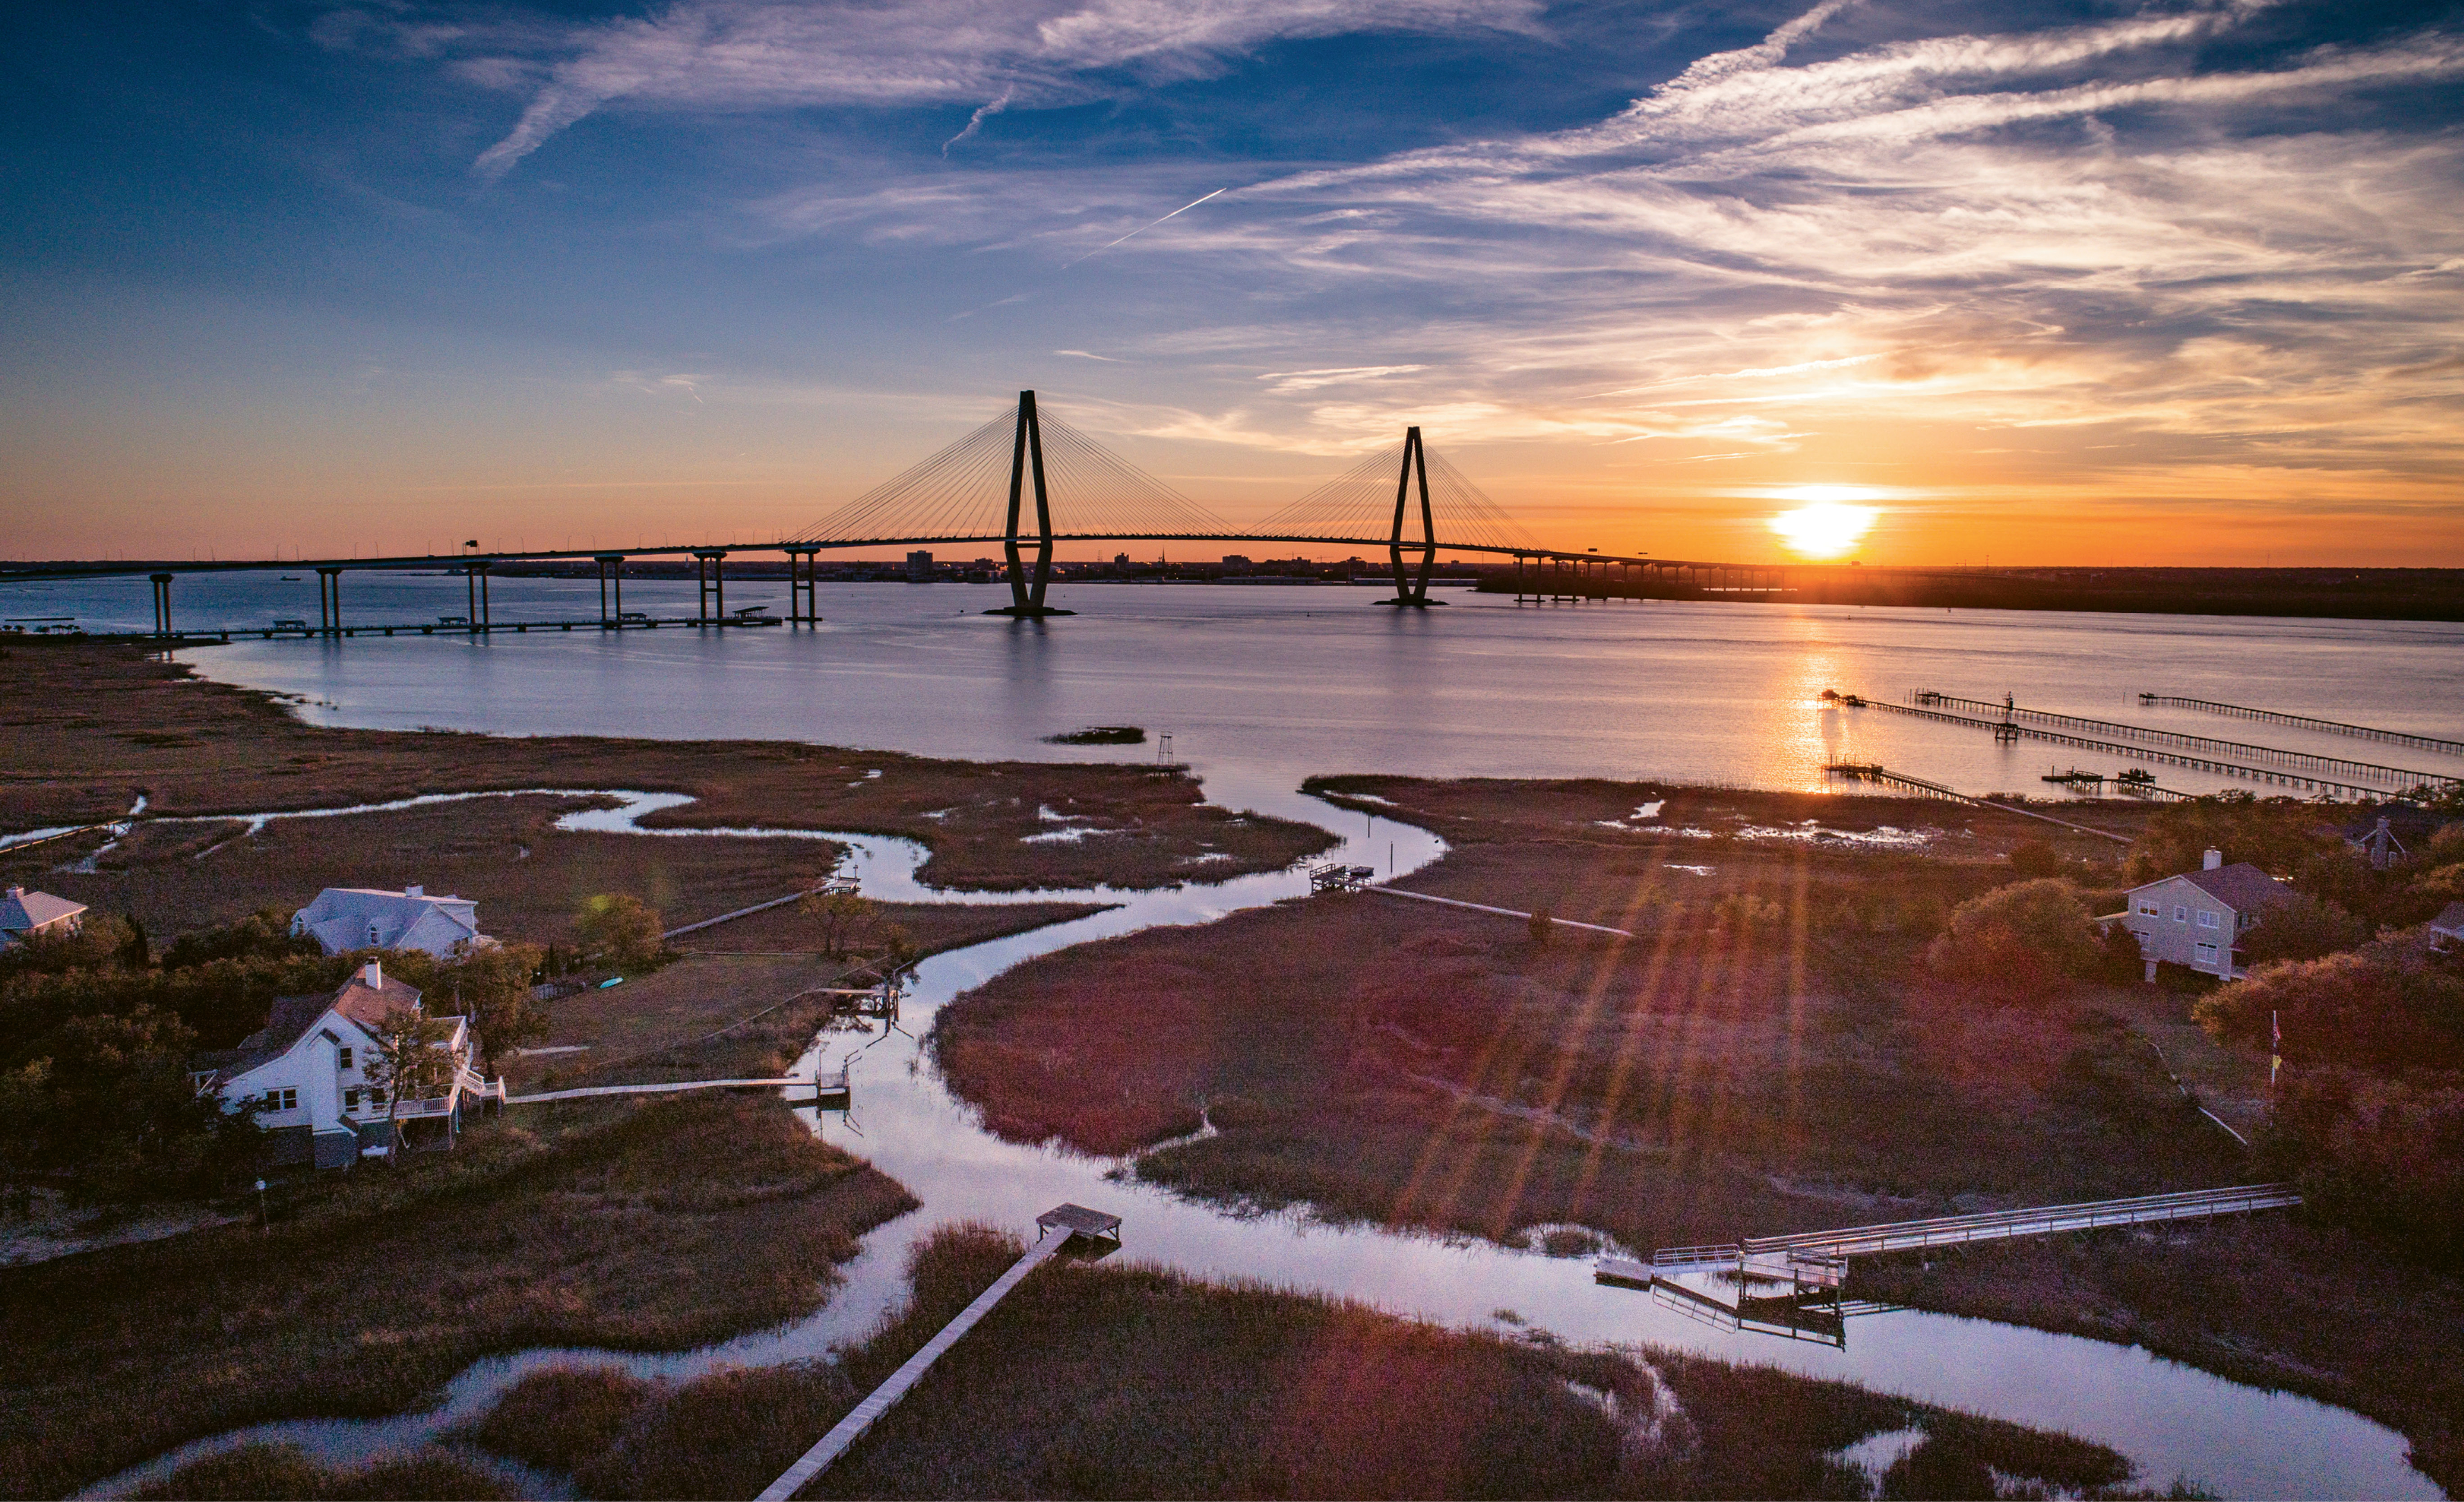 Sunset overlooking the Ravenel Bridge by Nicholas Skylar Holzworth  {Professional category}  - Taken from the Mount Pleasant side of the Cooper River in spring 2017